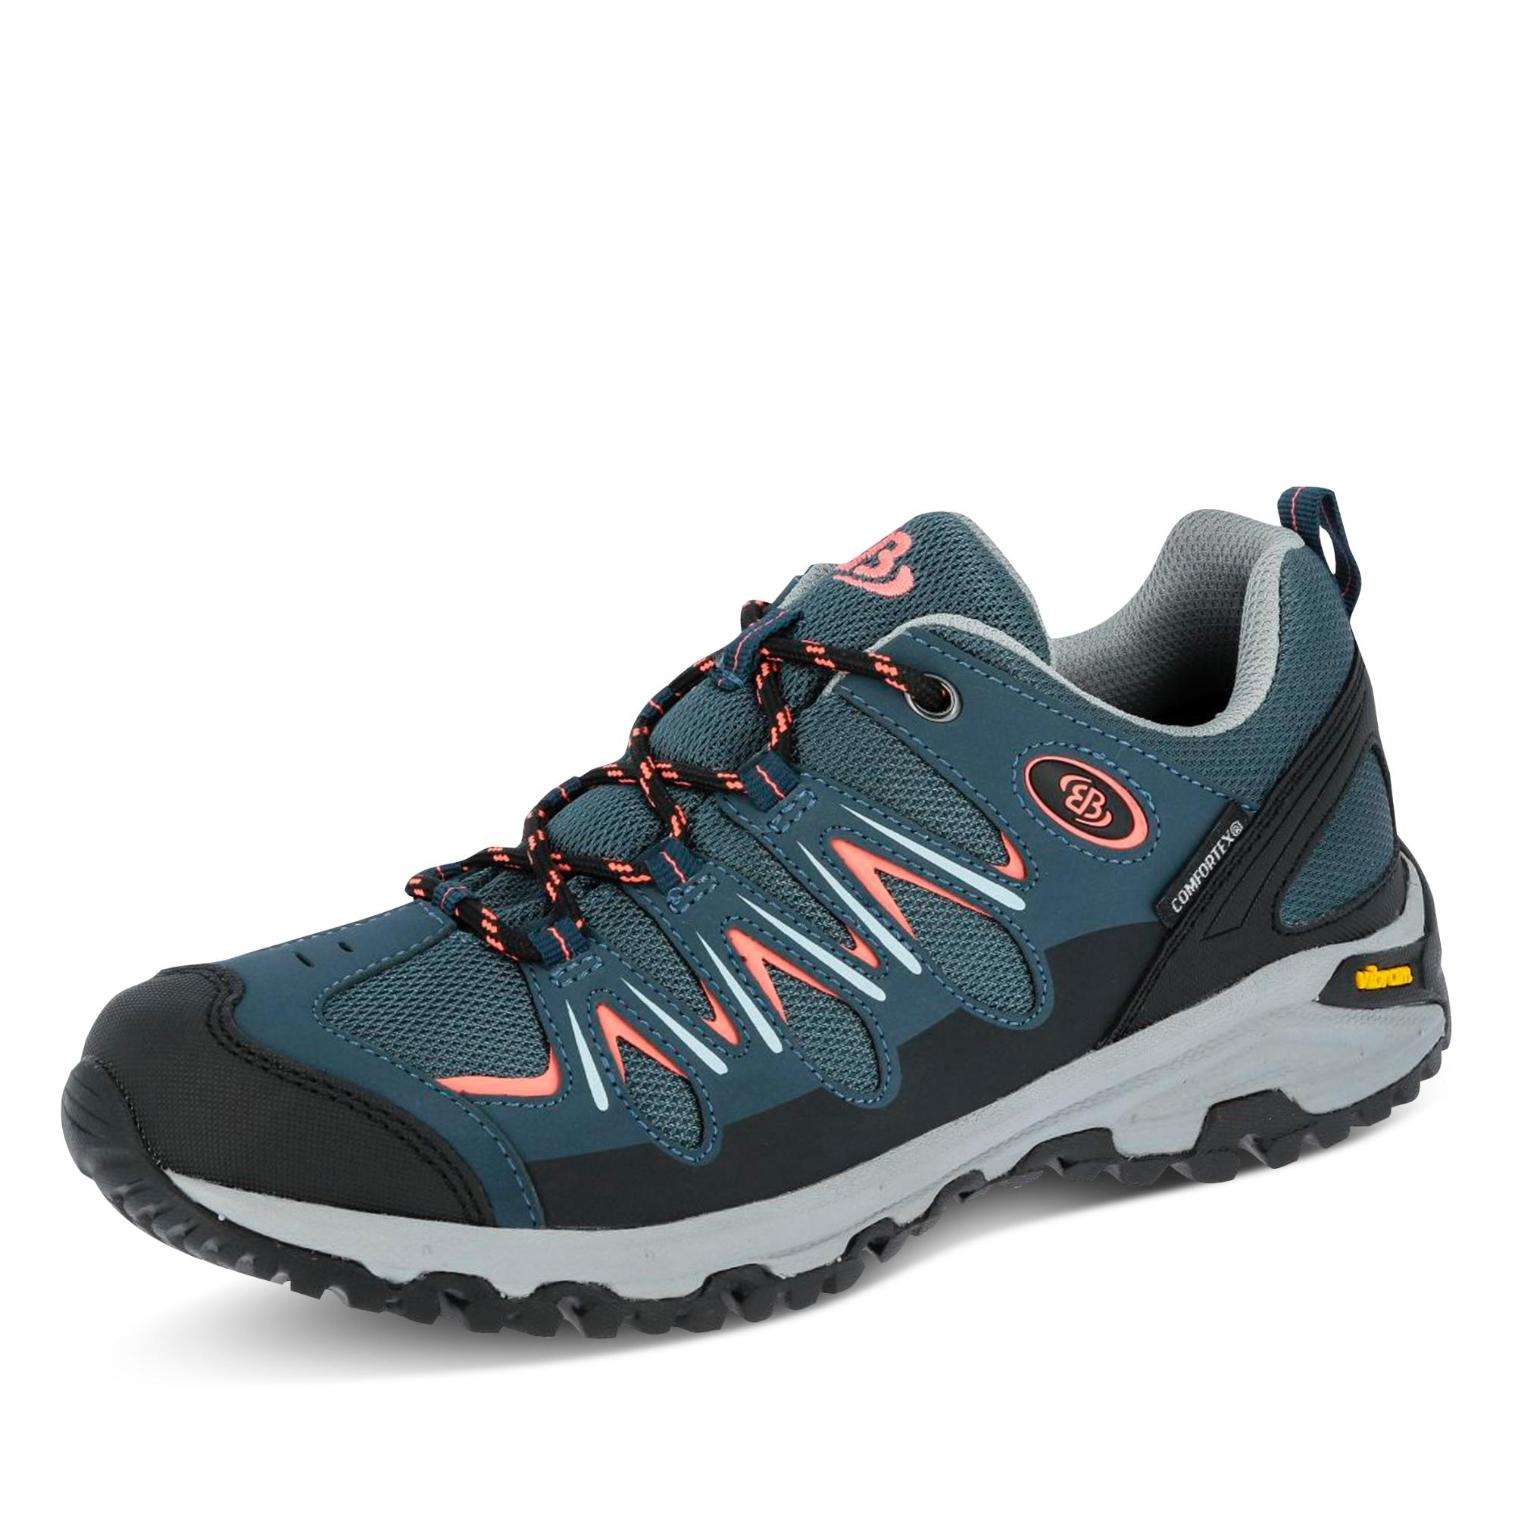 Brütting Expedition COMFORTEX Outdoorschuh in Farbe blau/rose günstig online kaufen